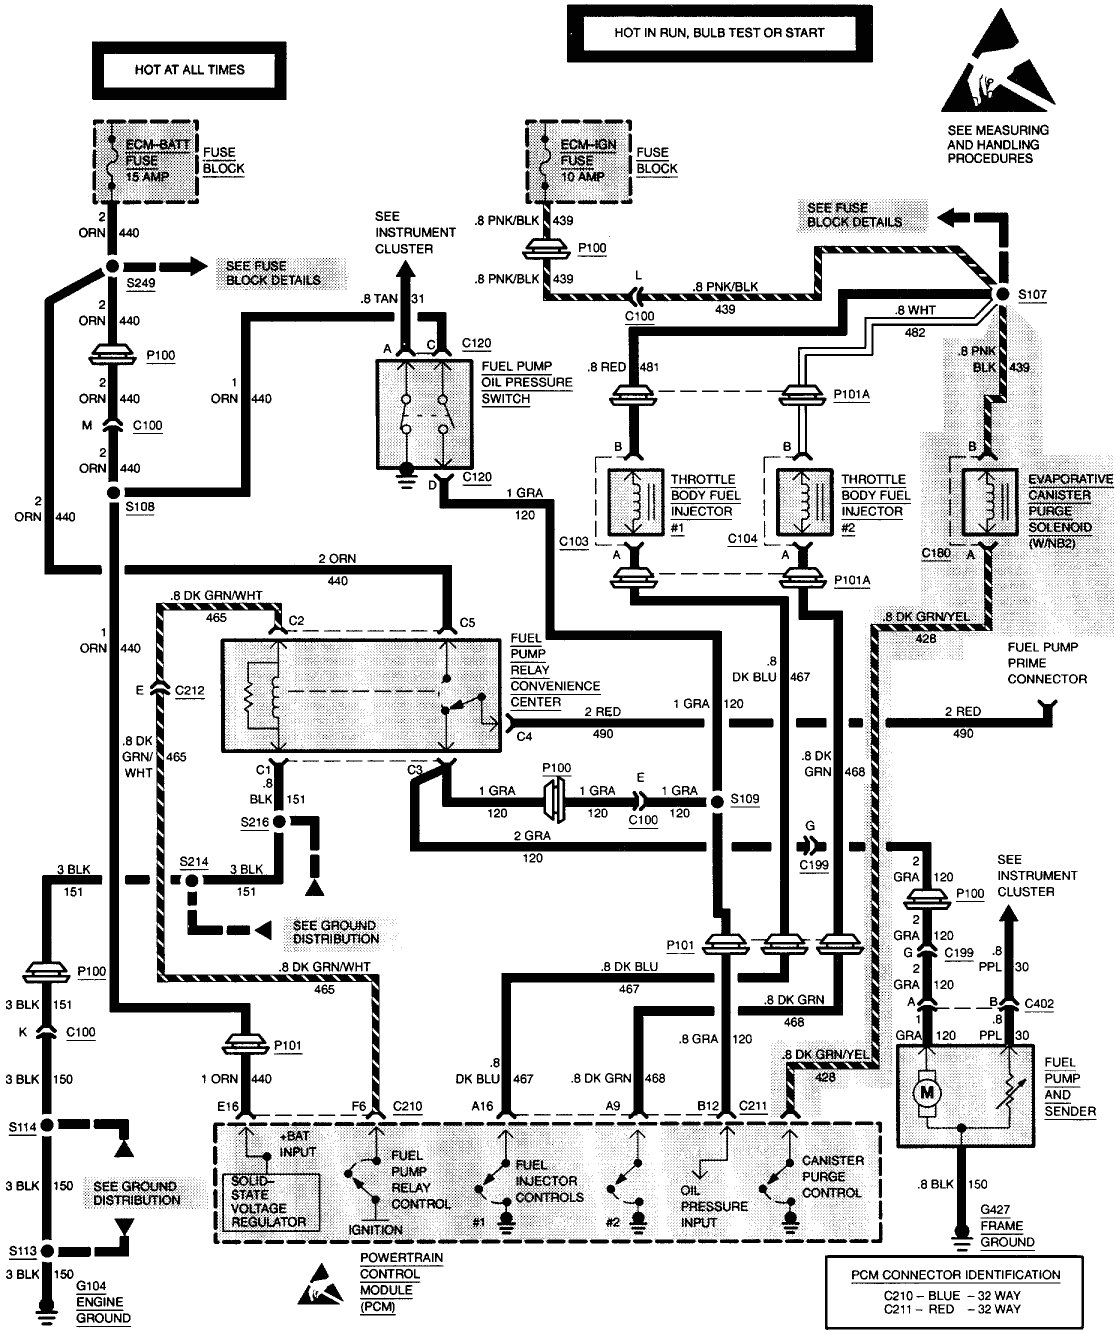 94 chevy s10 wiring diagram wiring diagram name 94 chevy s10 ecm wiring diagram 1994 chevy